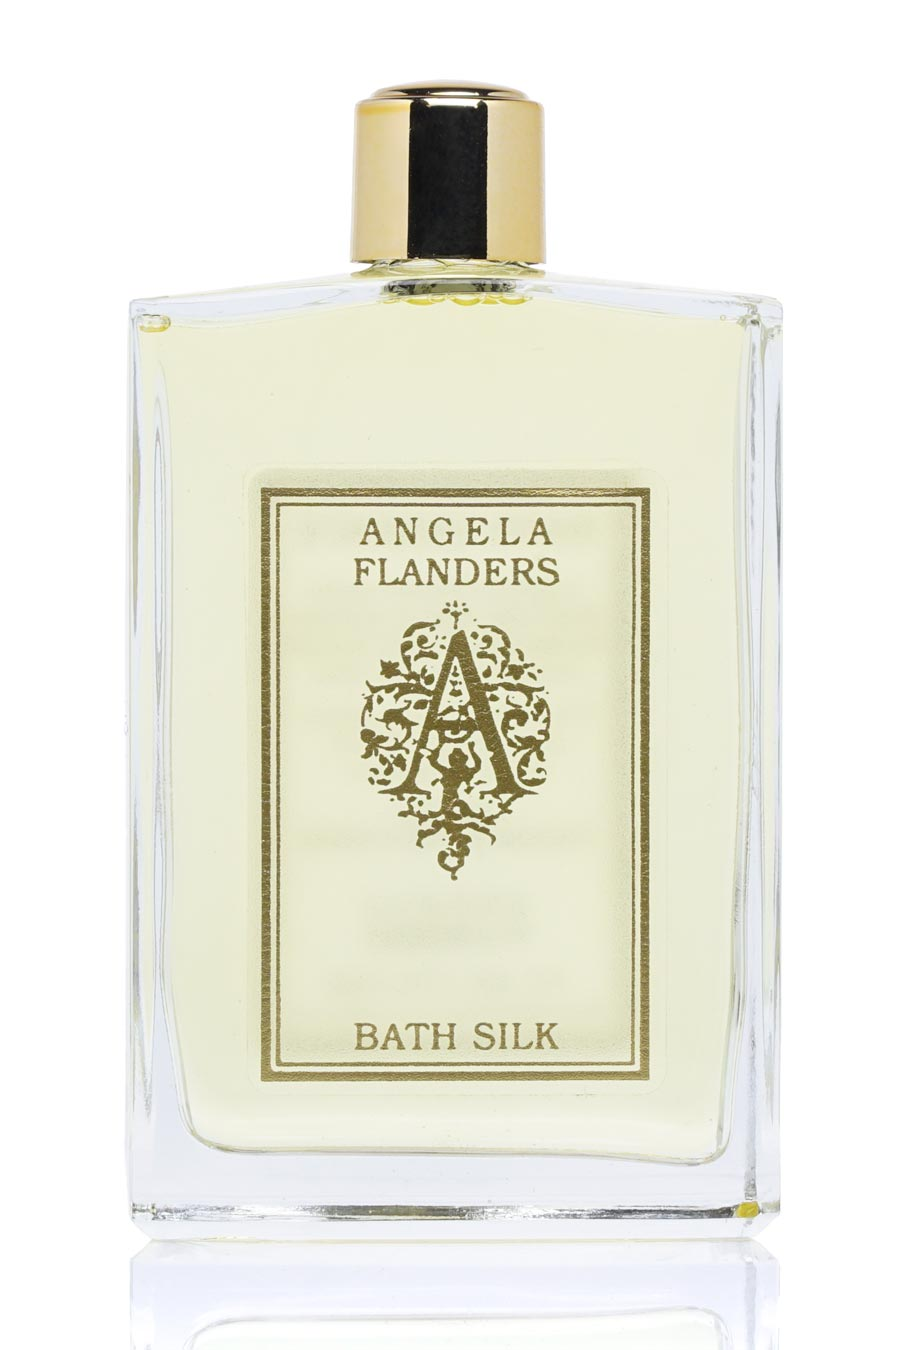 Angela Flanders Earl Grey Bath Silk 100ml